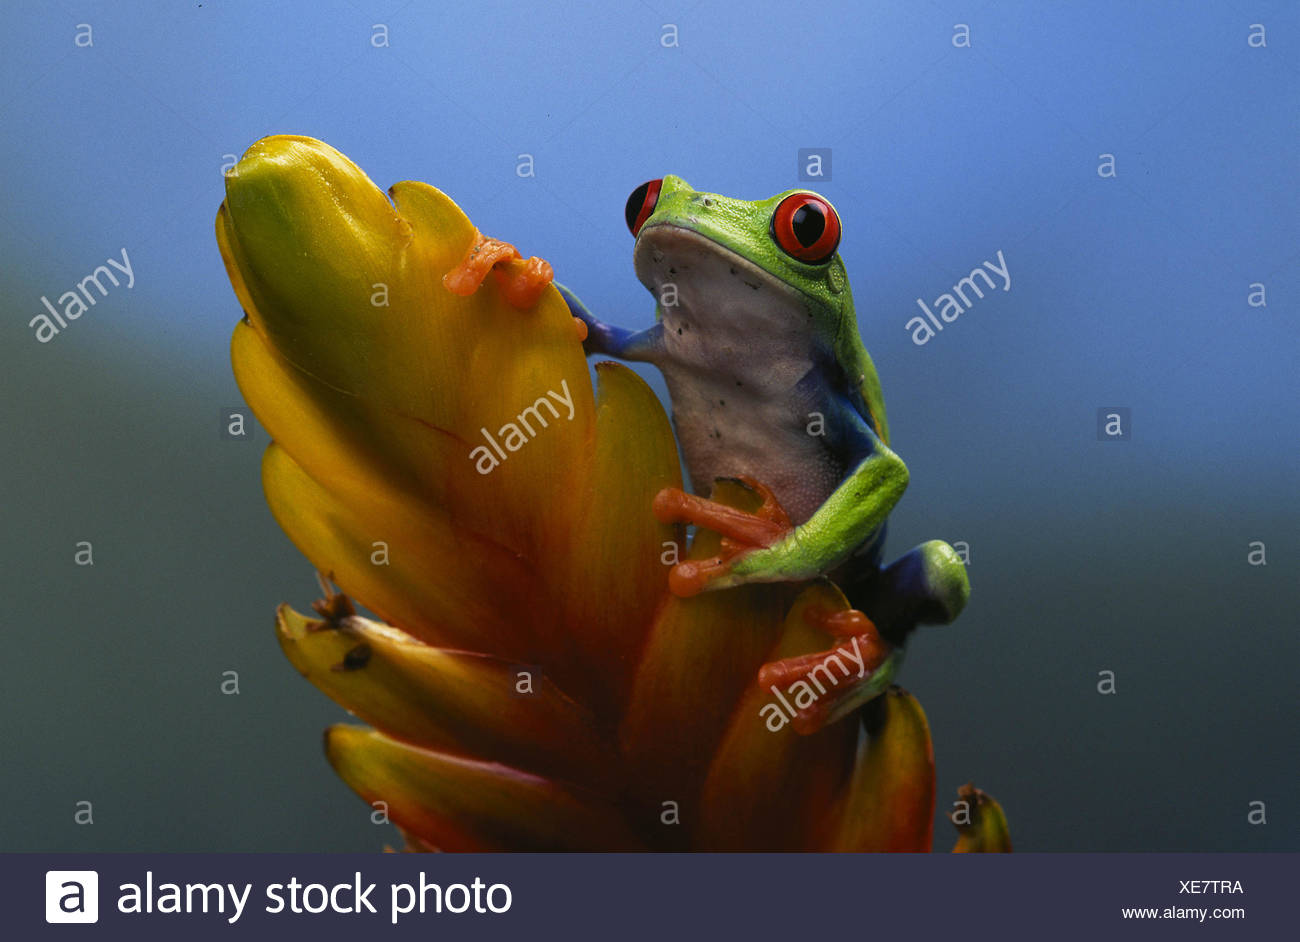 Red-eyed Tree Frog - Stock Image